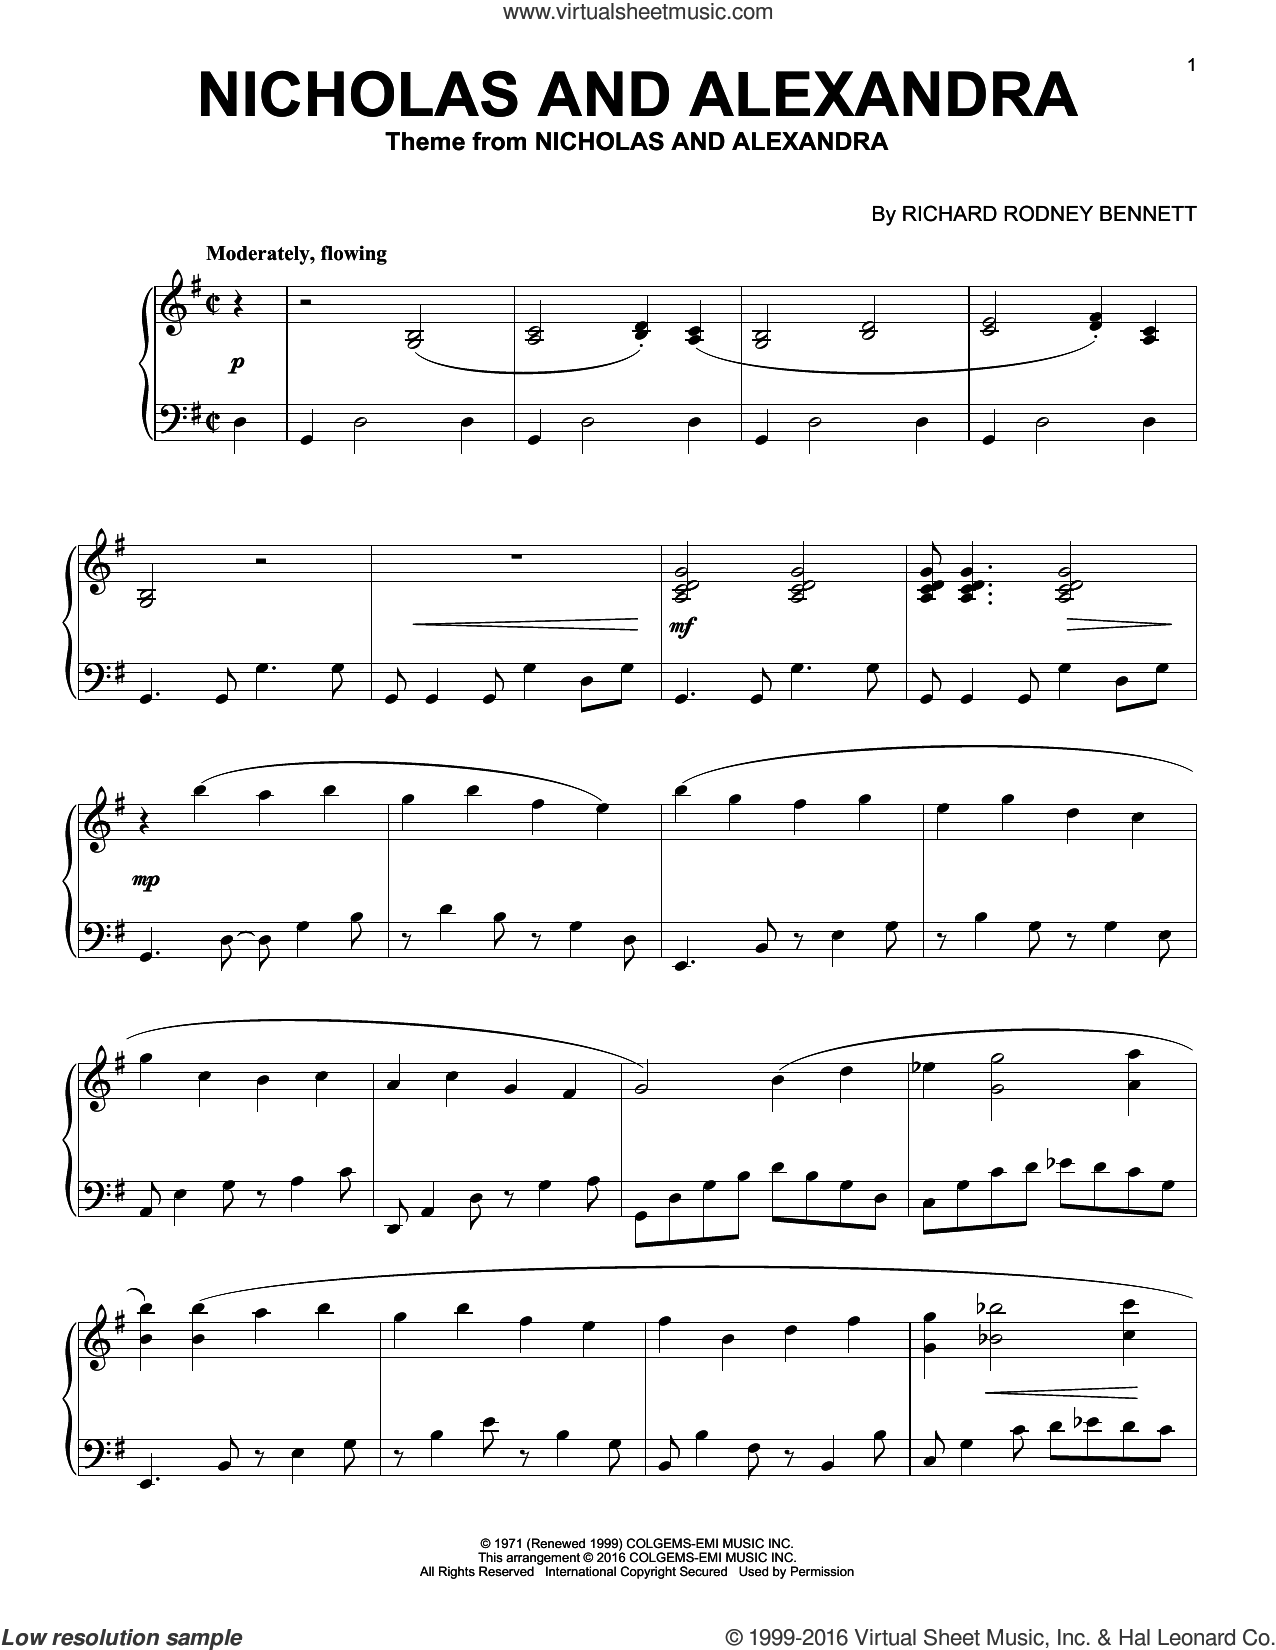 Nicholas And Alexandra sheet music for piano solo by Richard Bennett, intermediate skill level